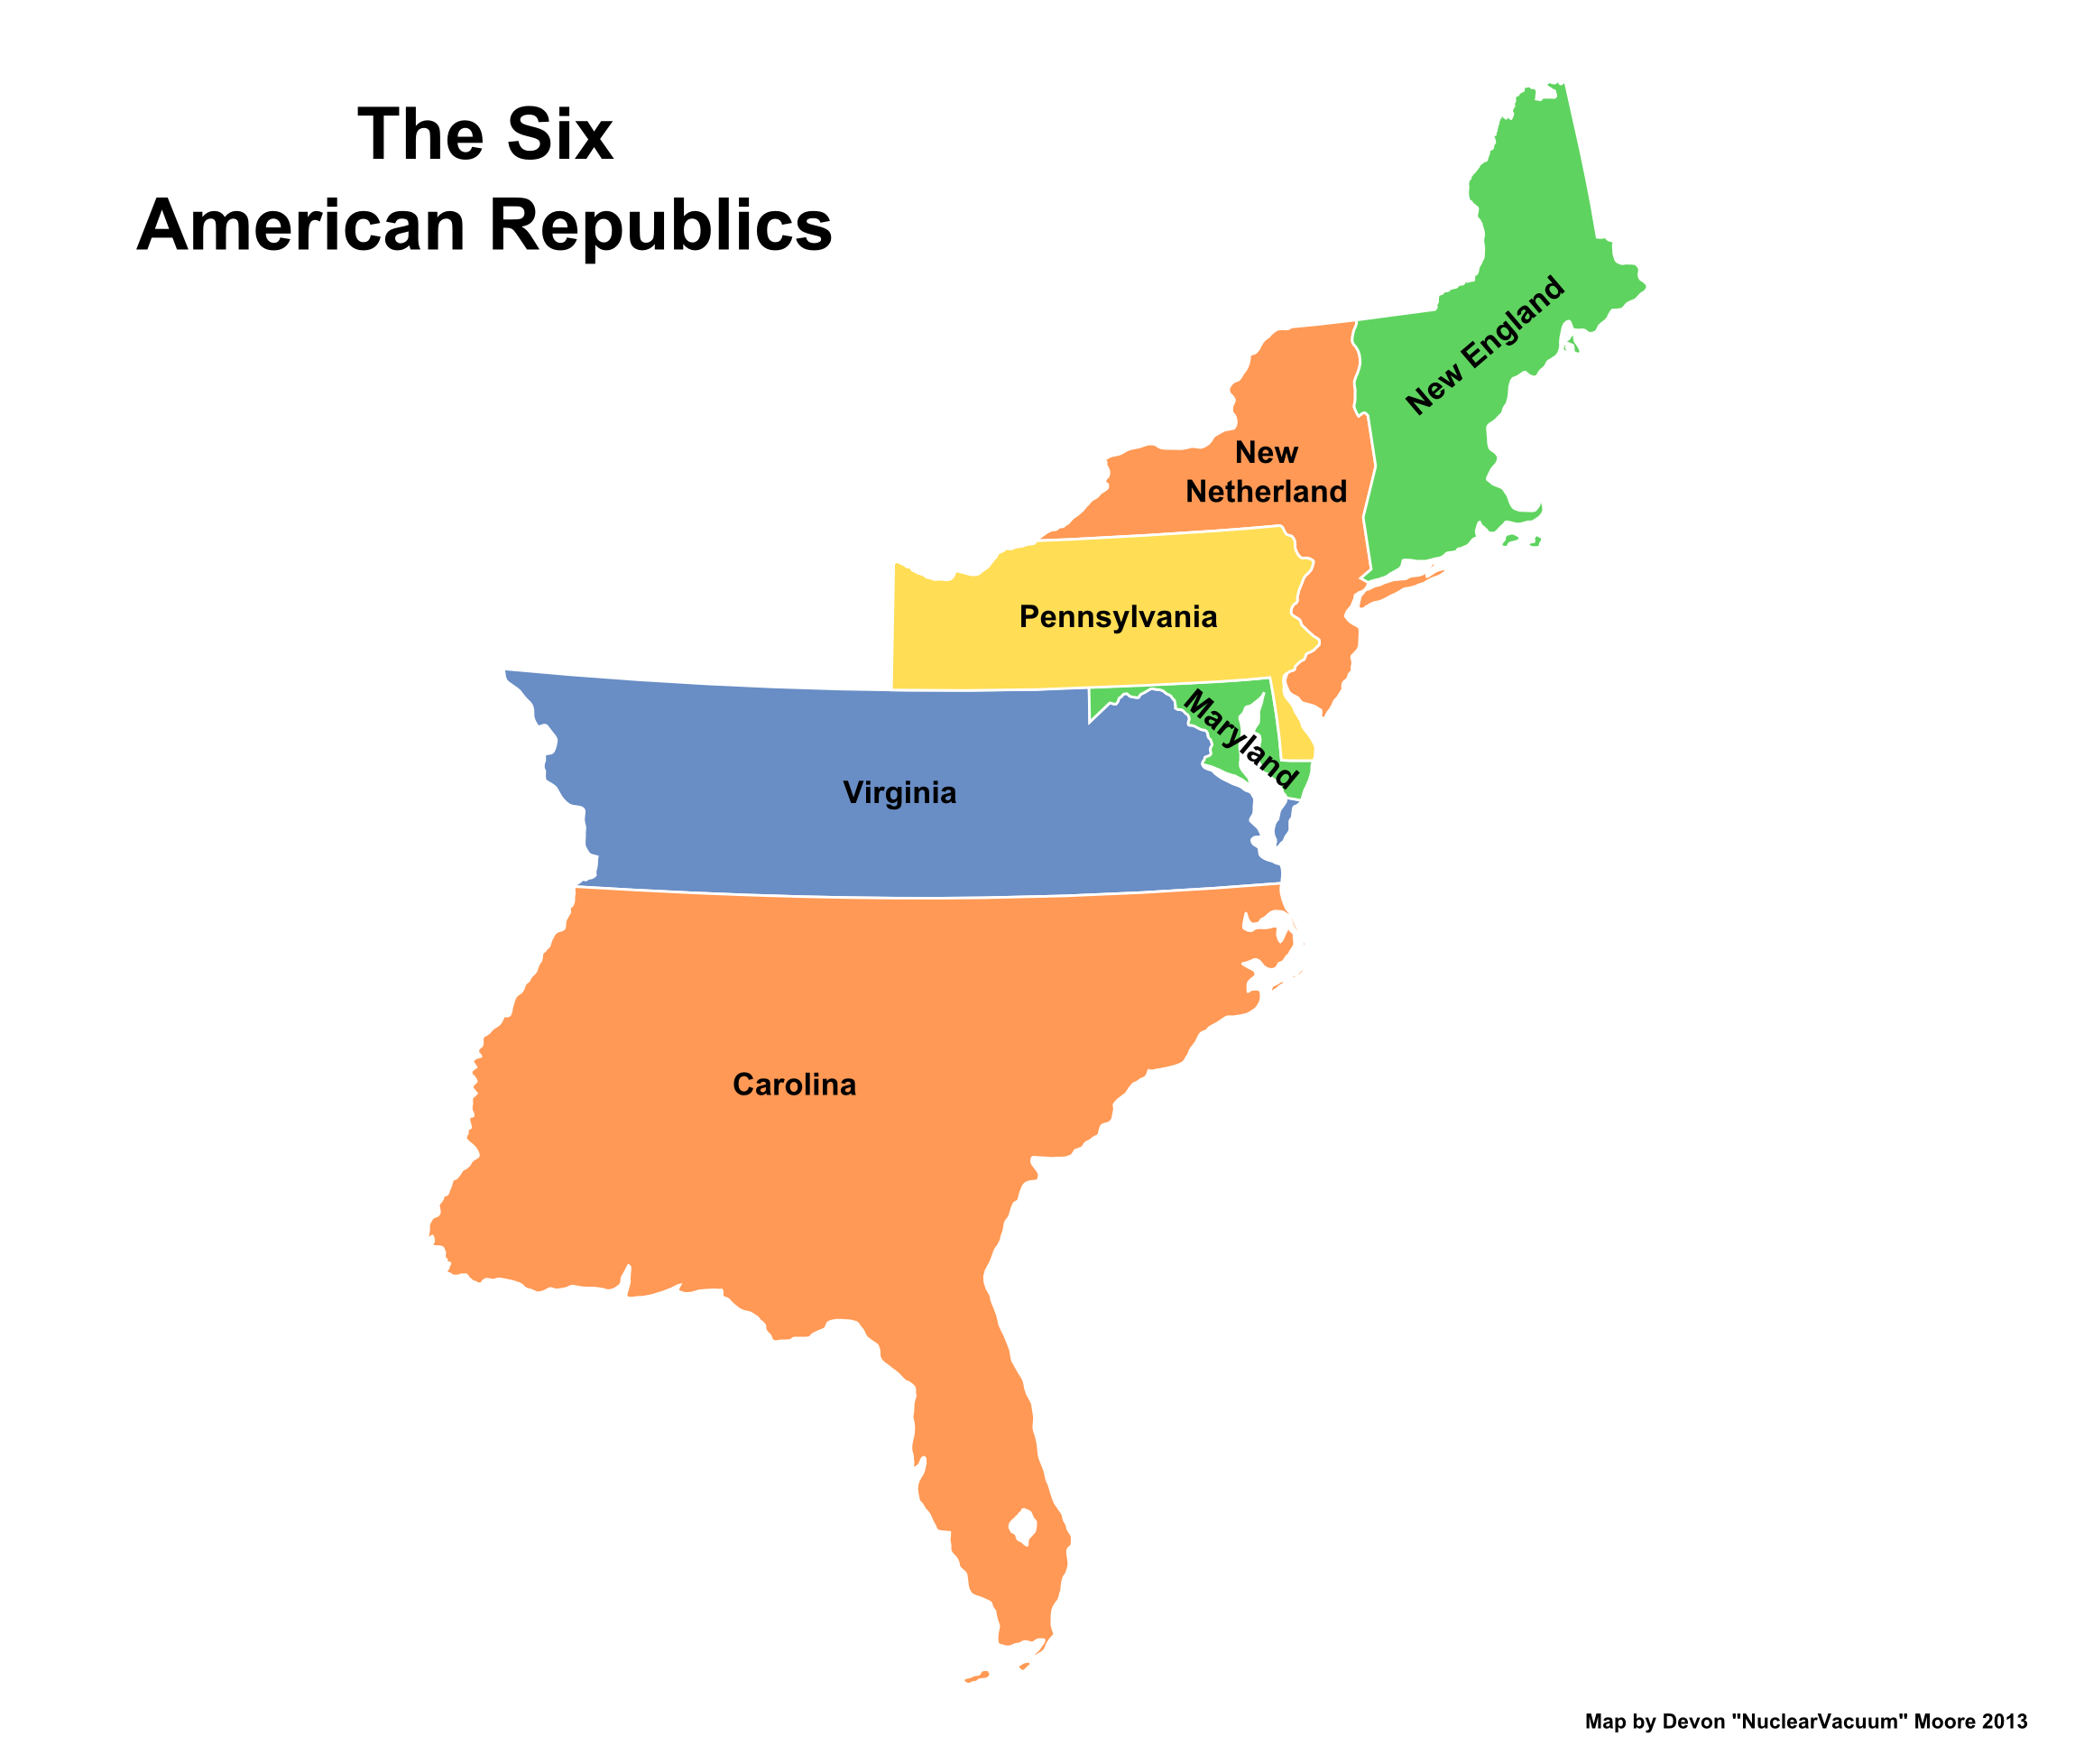 Time Zone Map: 13 State Map Map Of States on map of usa 1790, original 13 us states, 1st 13 states, map of seven cities, revolutionary war 13 states, map of five nations, united state map 13 states, map of asia pacific region, map of mid-atlantic region, 13 colonies states, map of industrialized world, map of united sates,